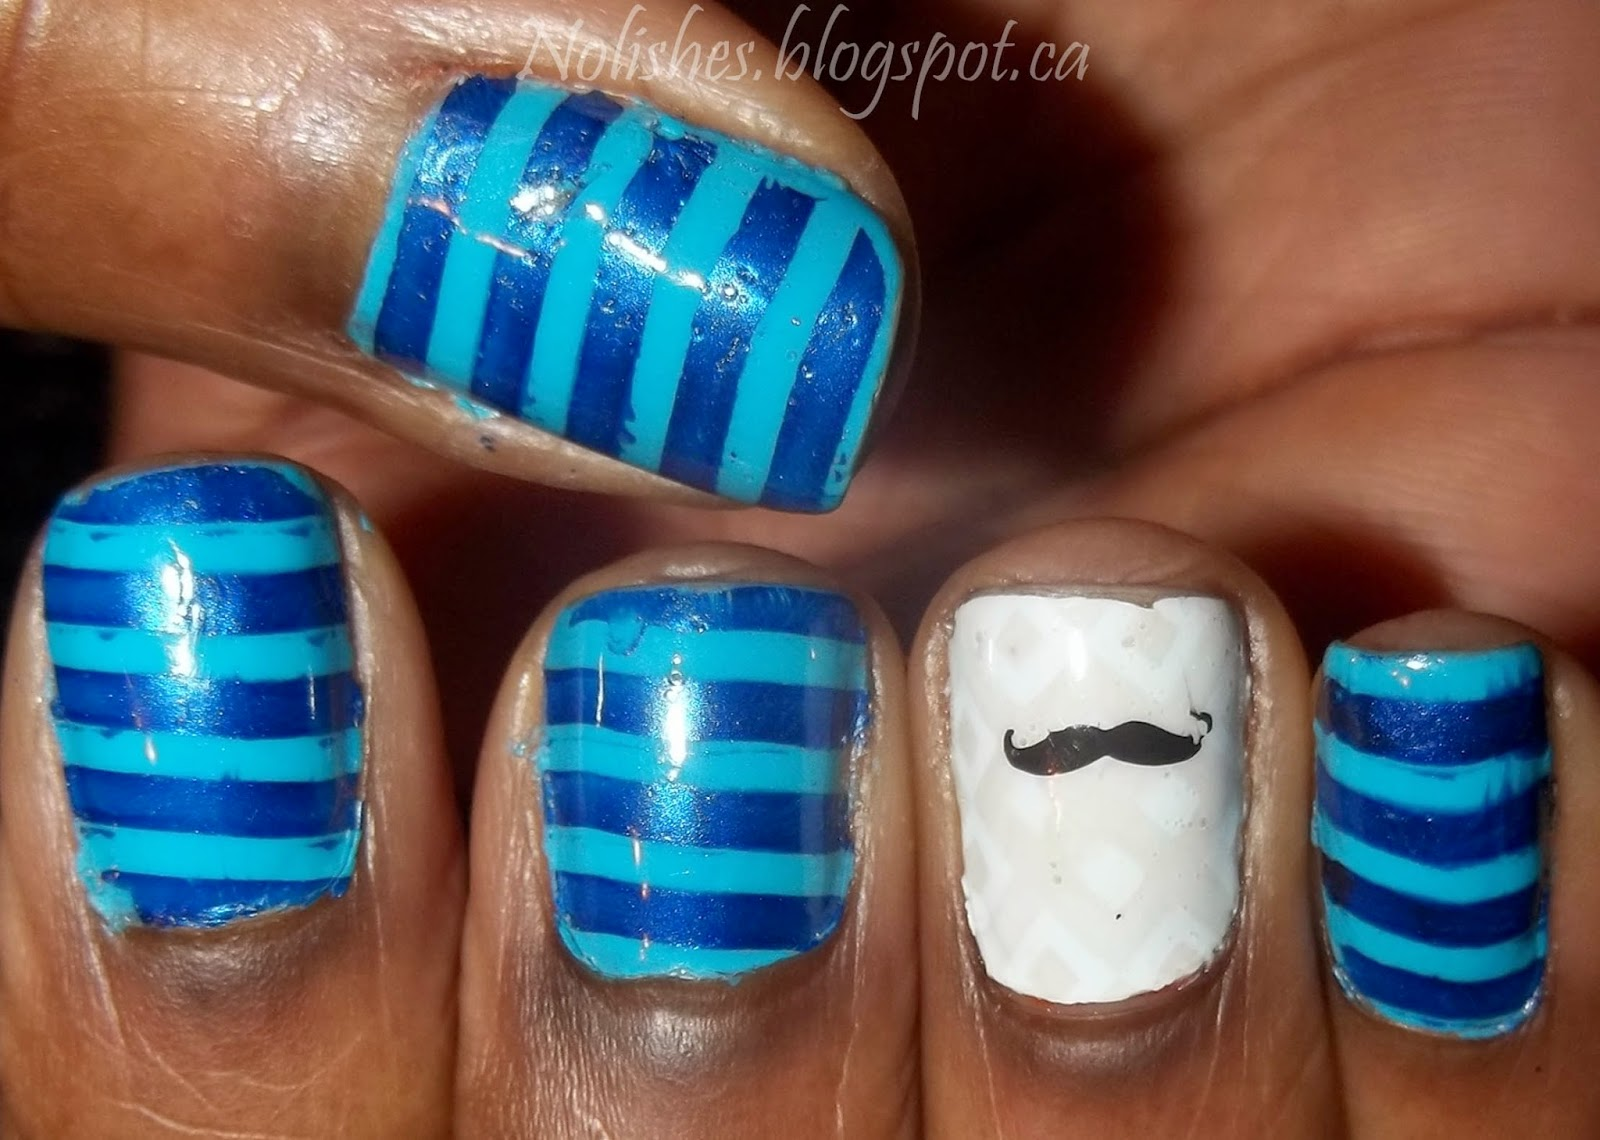 Blue Striped Movember Manicure using Essie 'I'm Addicted', and China Glaze polishes 'Scandalous Shenanigans', 'New Birth', and 'Five Rules'. Stamped with Moyou London Pro XL plates 01, and 08